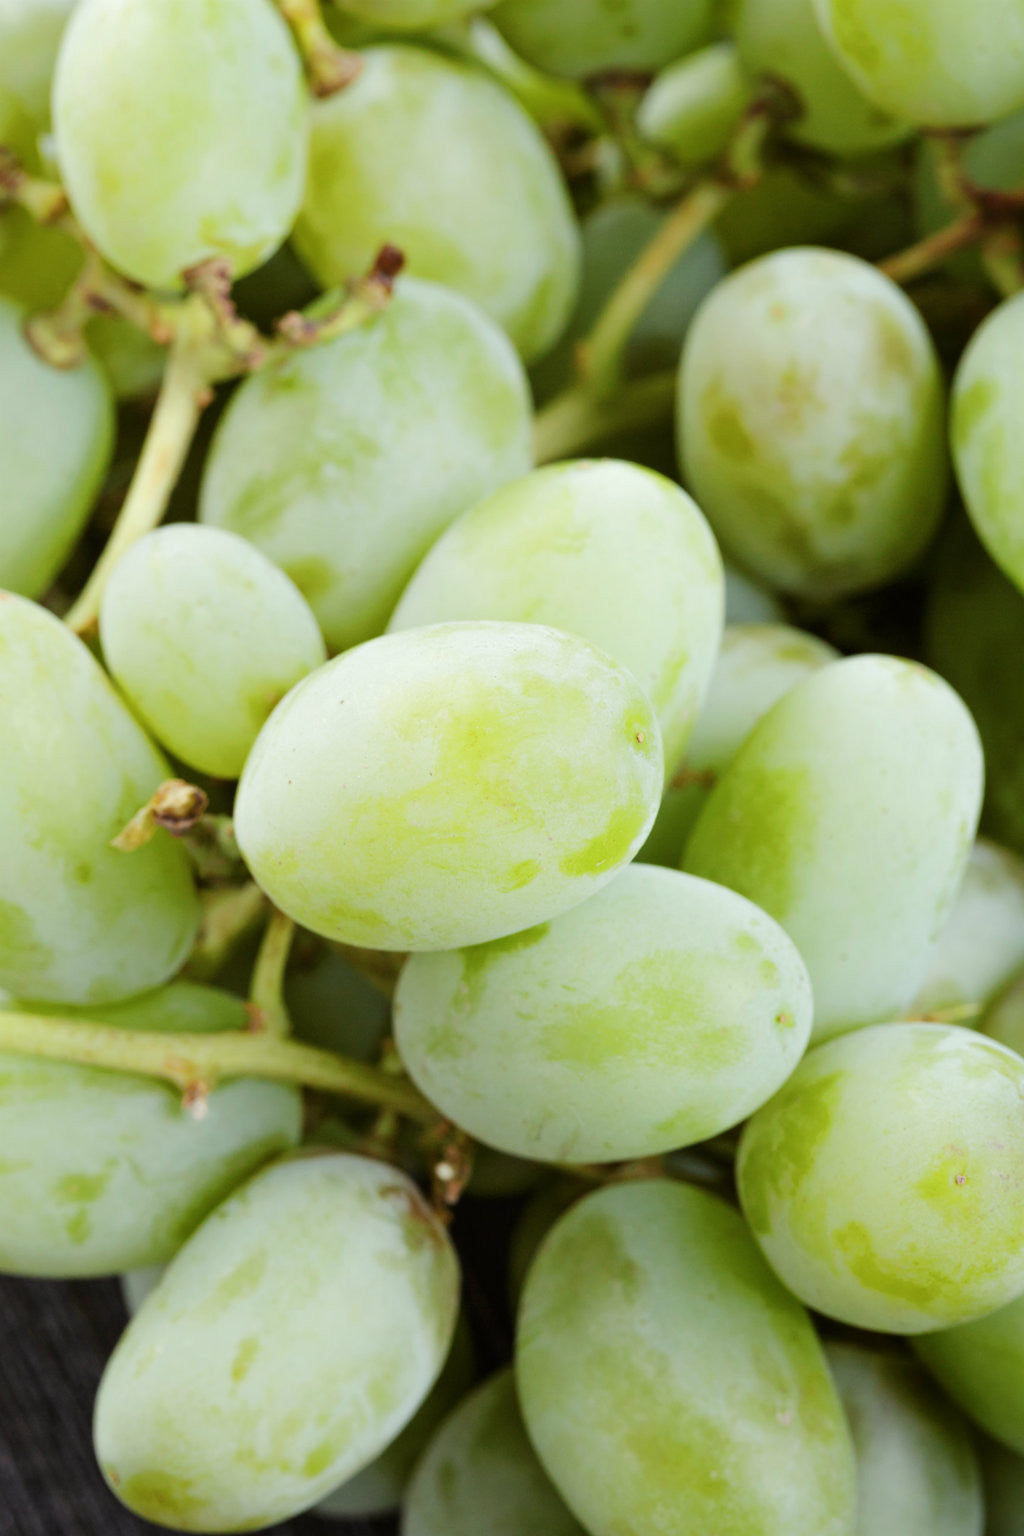 Pick of the Week - Thompson Seedless Grapes | Aussie White Grapes